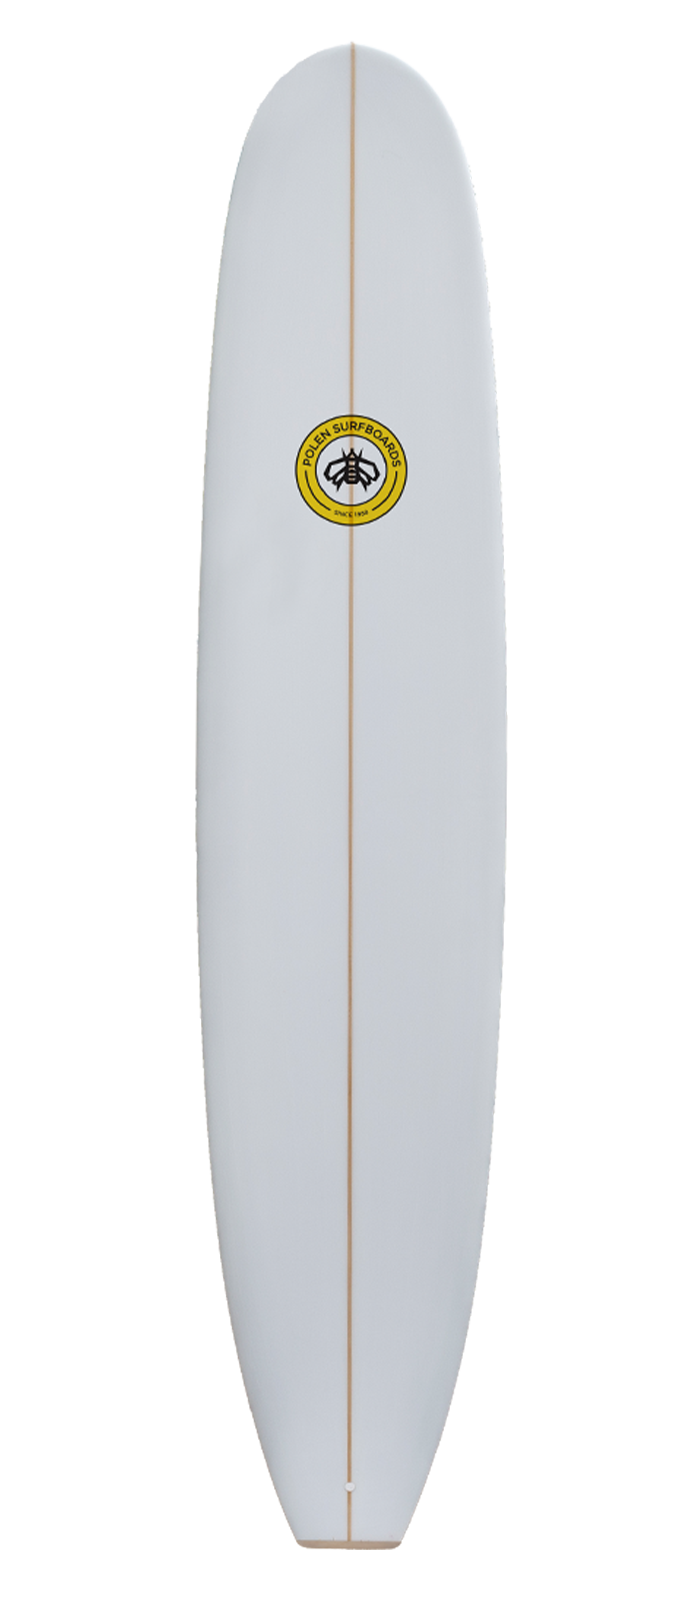 GRACE surfboard model deck